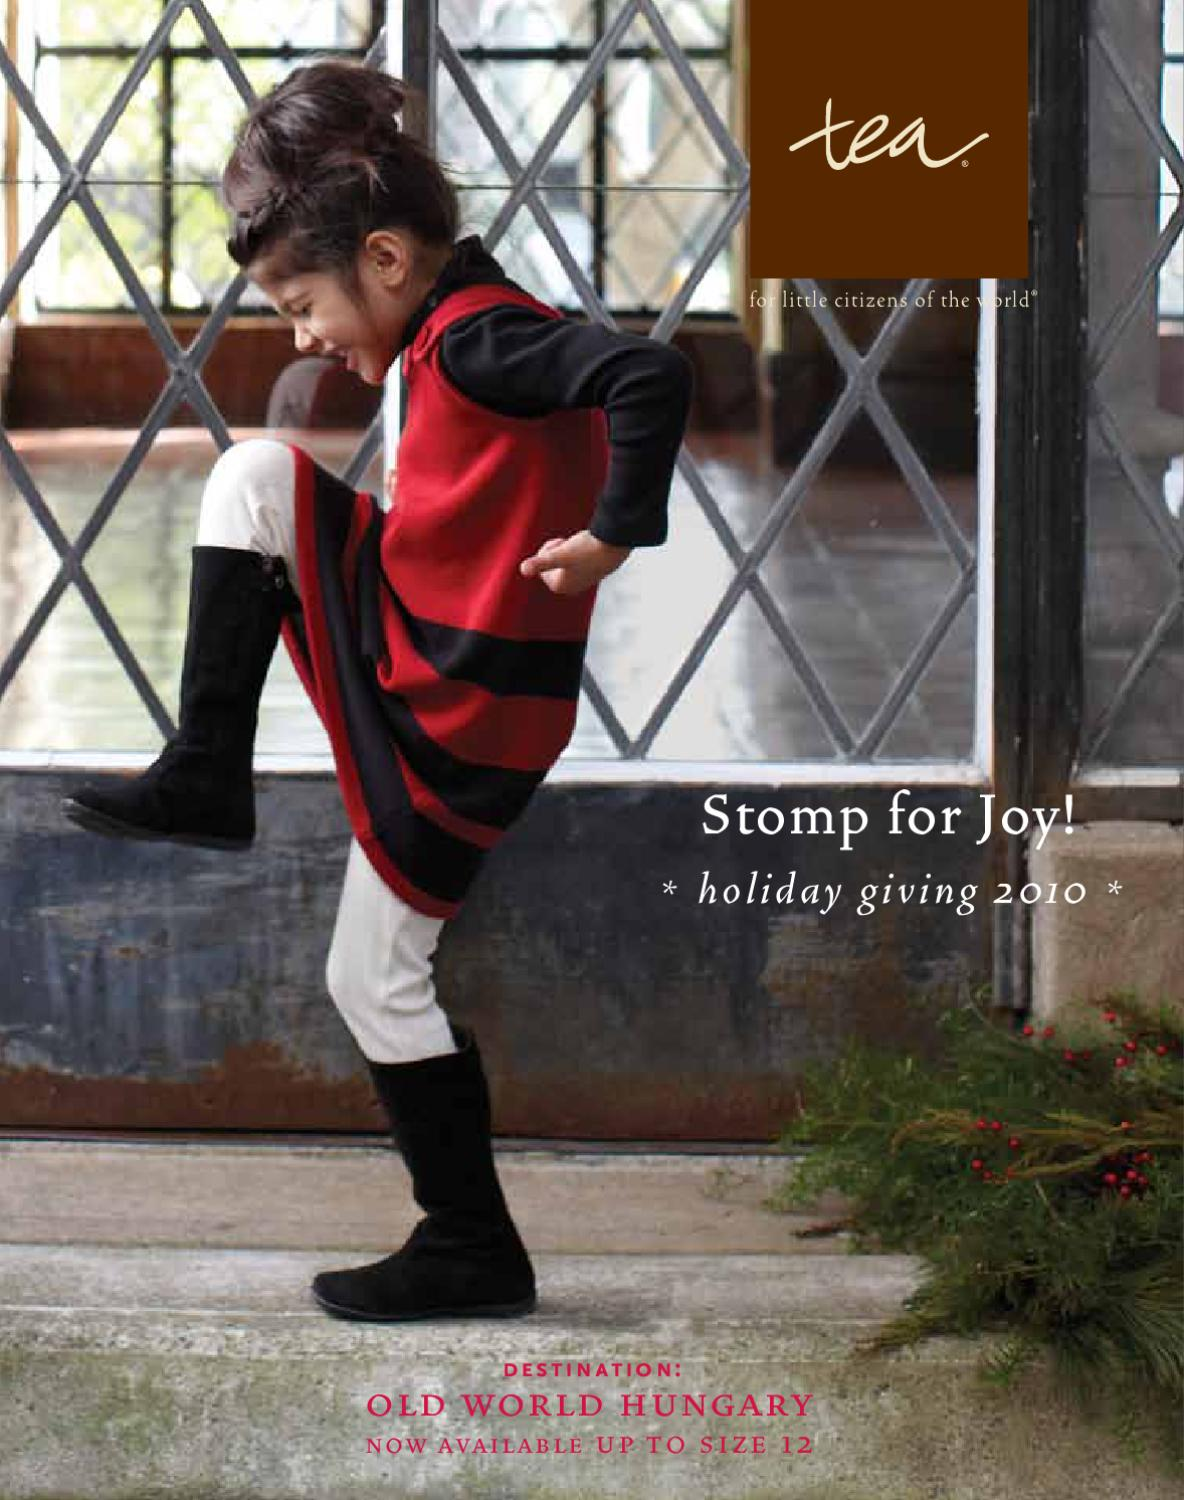 573ec3531 Tea Collection - Stomp for Joy! (Holiday Giving 2010) by Tea ...